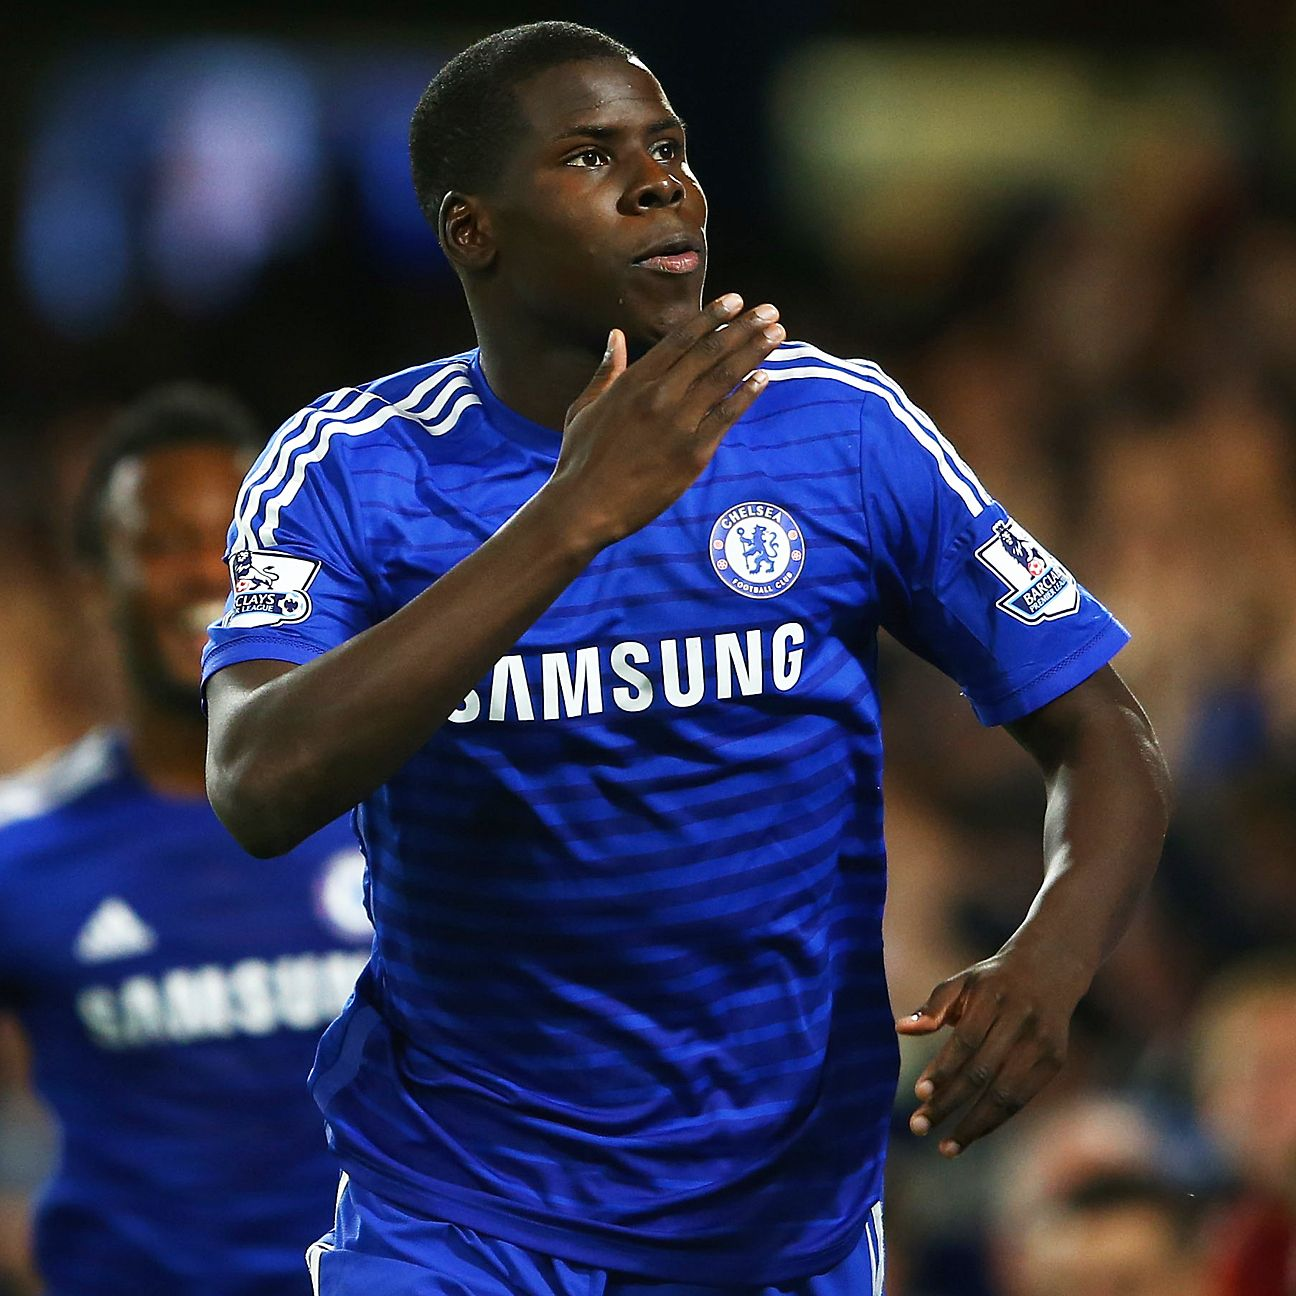 Youngster Kurt Zouma scored the first of Chelsea's two goals on the night.